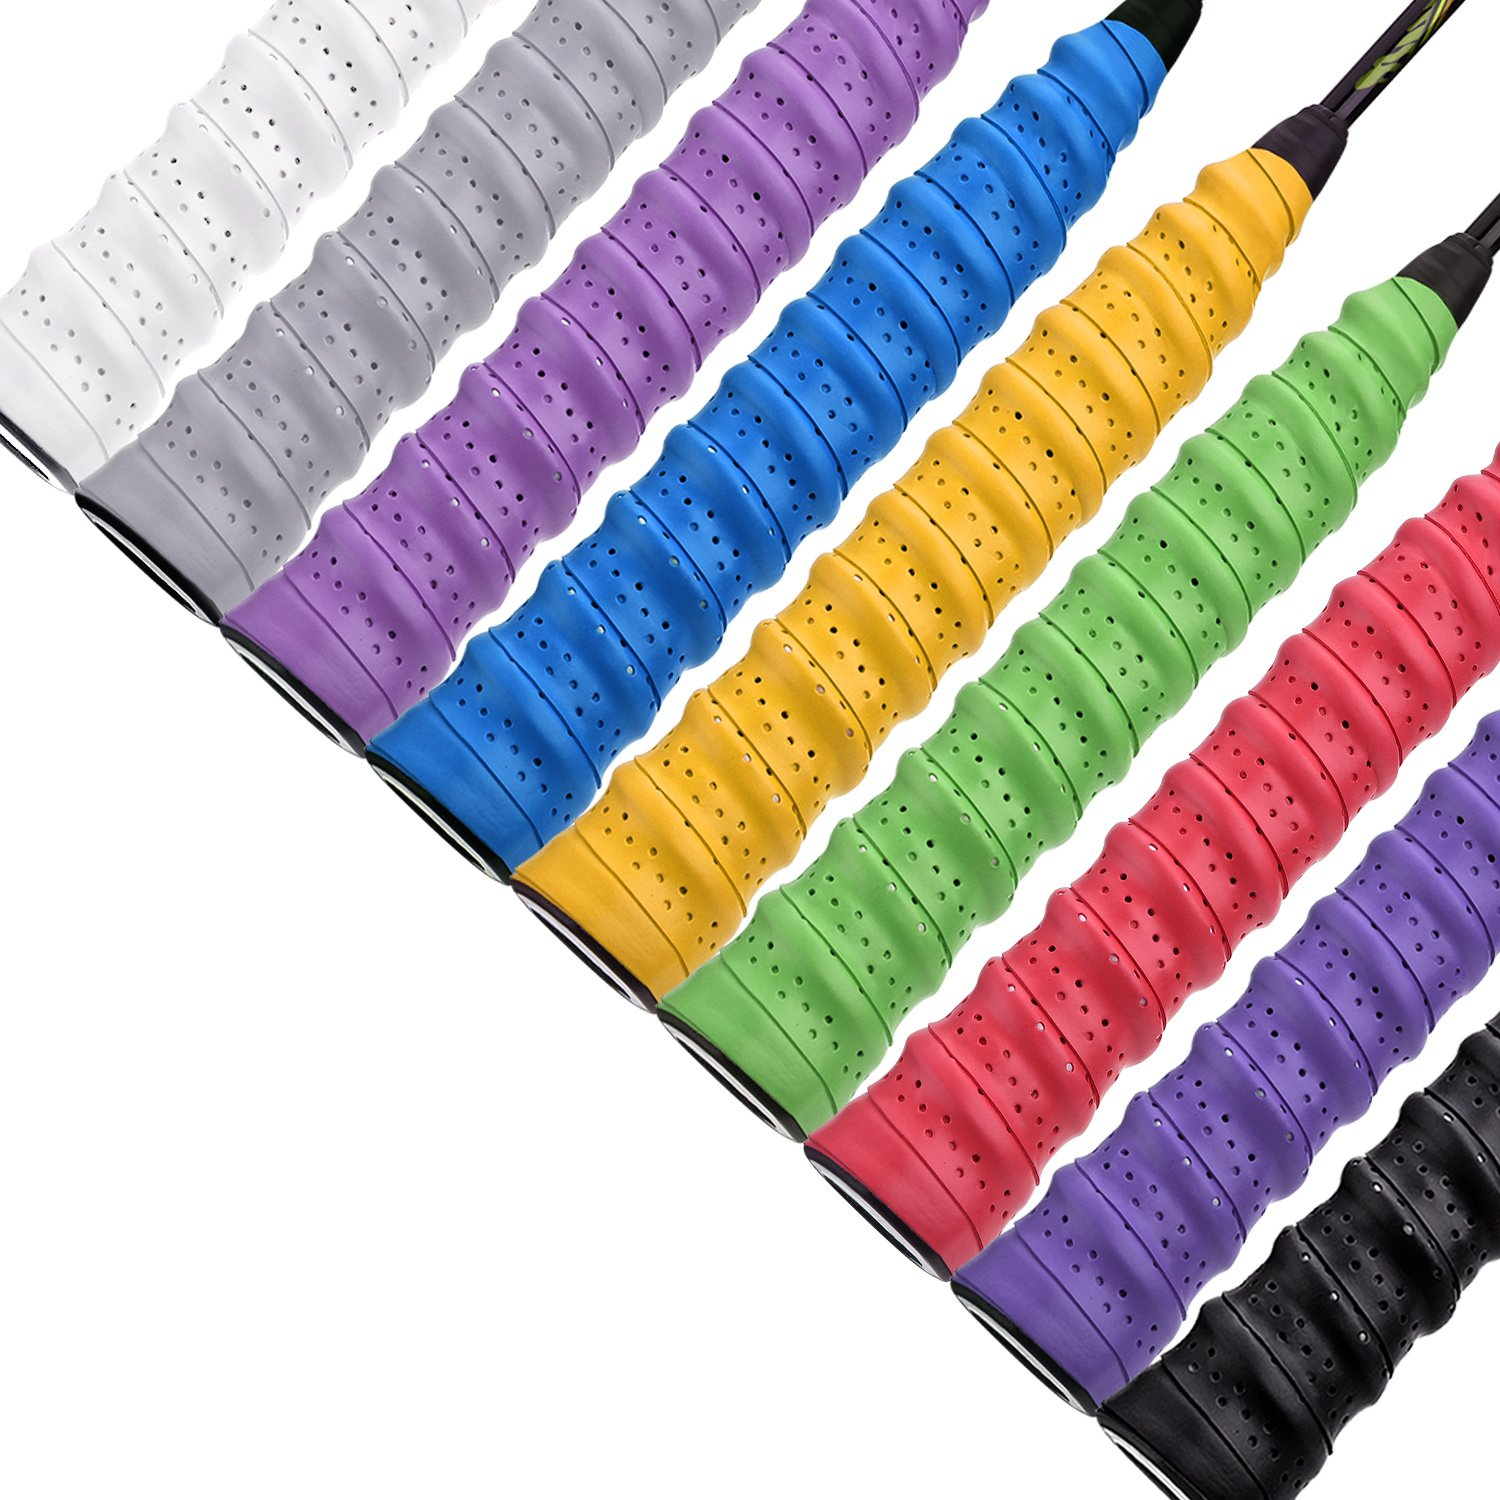 9 Pieces Tennis Badminton Racket Overgrips for Anti-slip and Absorbent Grip, Multicolor Pangda